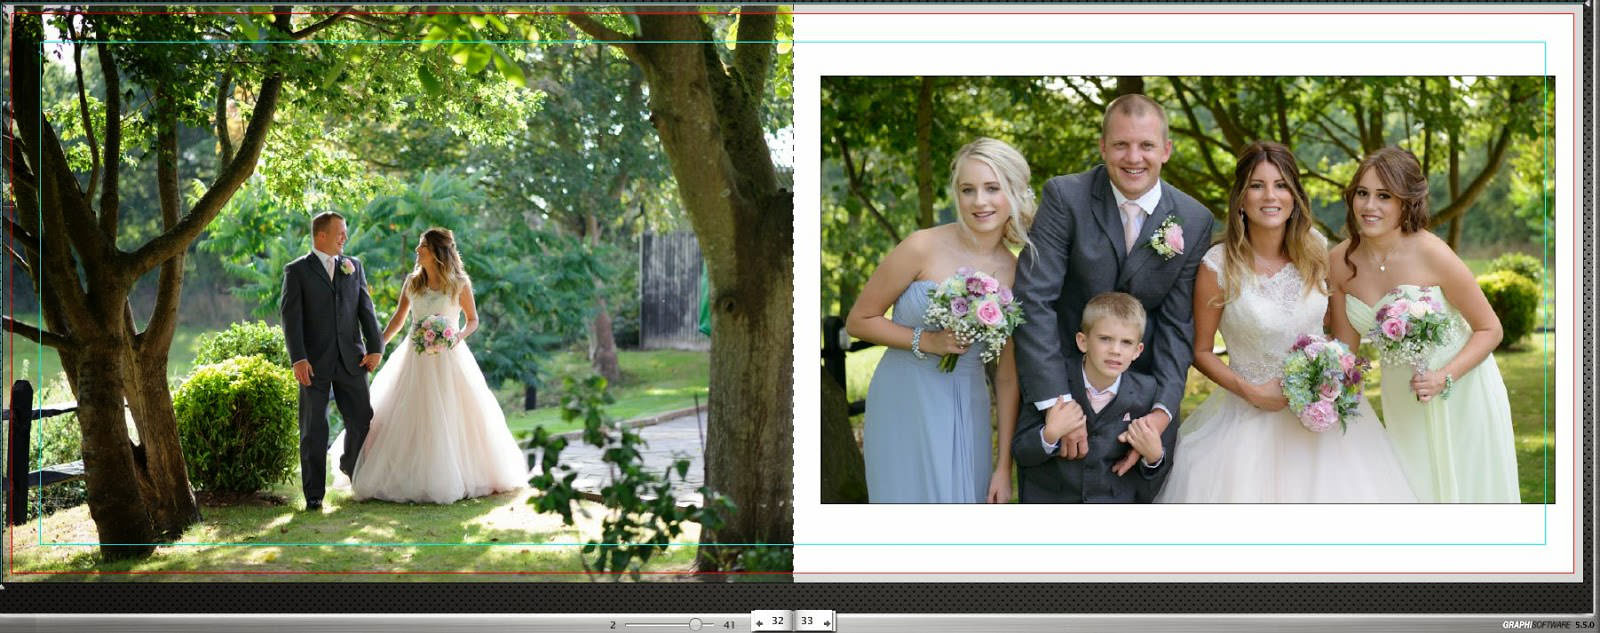 ali-gaudion-chichester-wedding-photographer-graphistudio-wedding-album-design-014